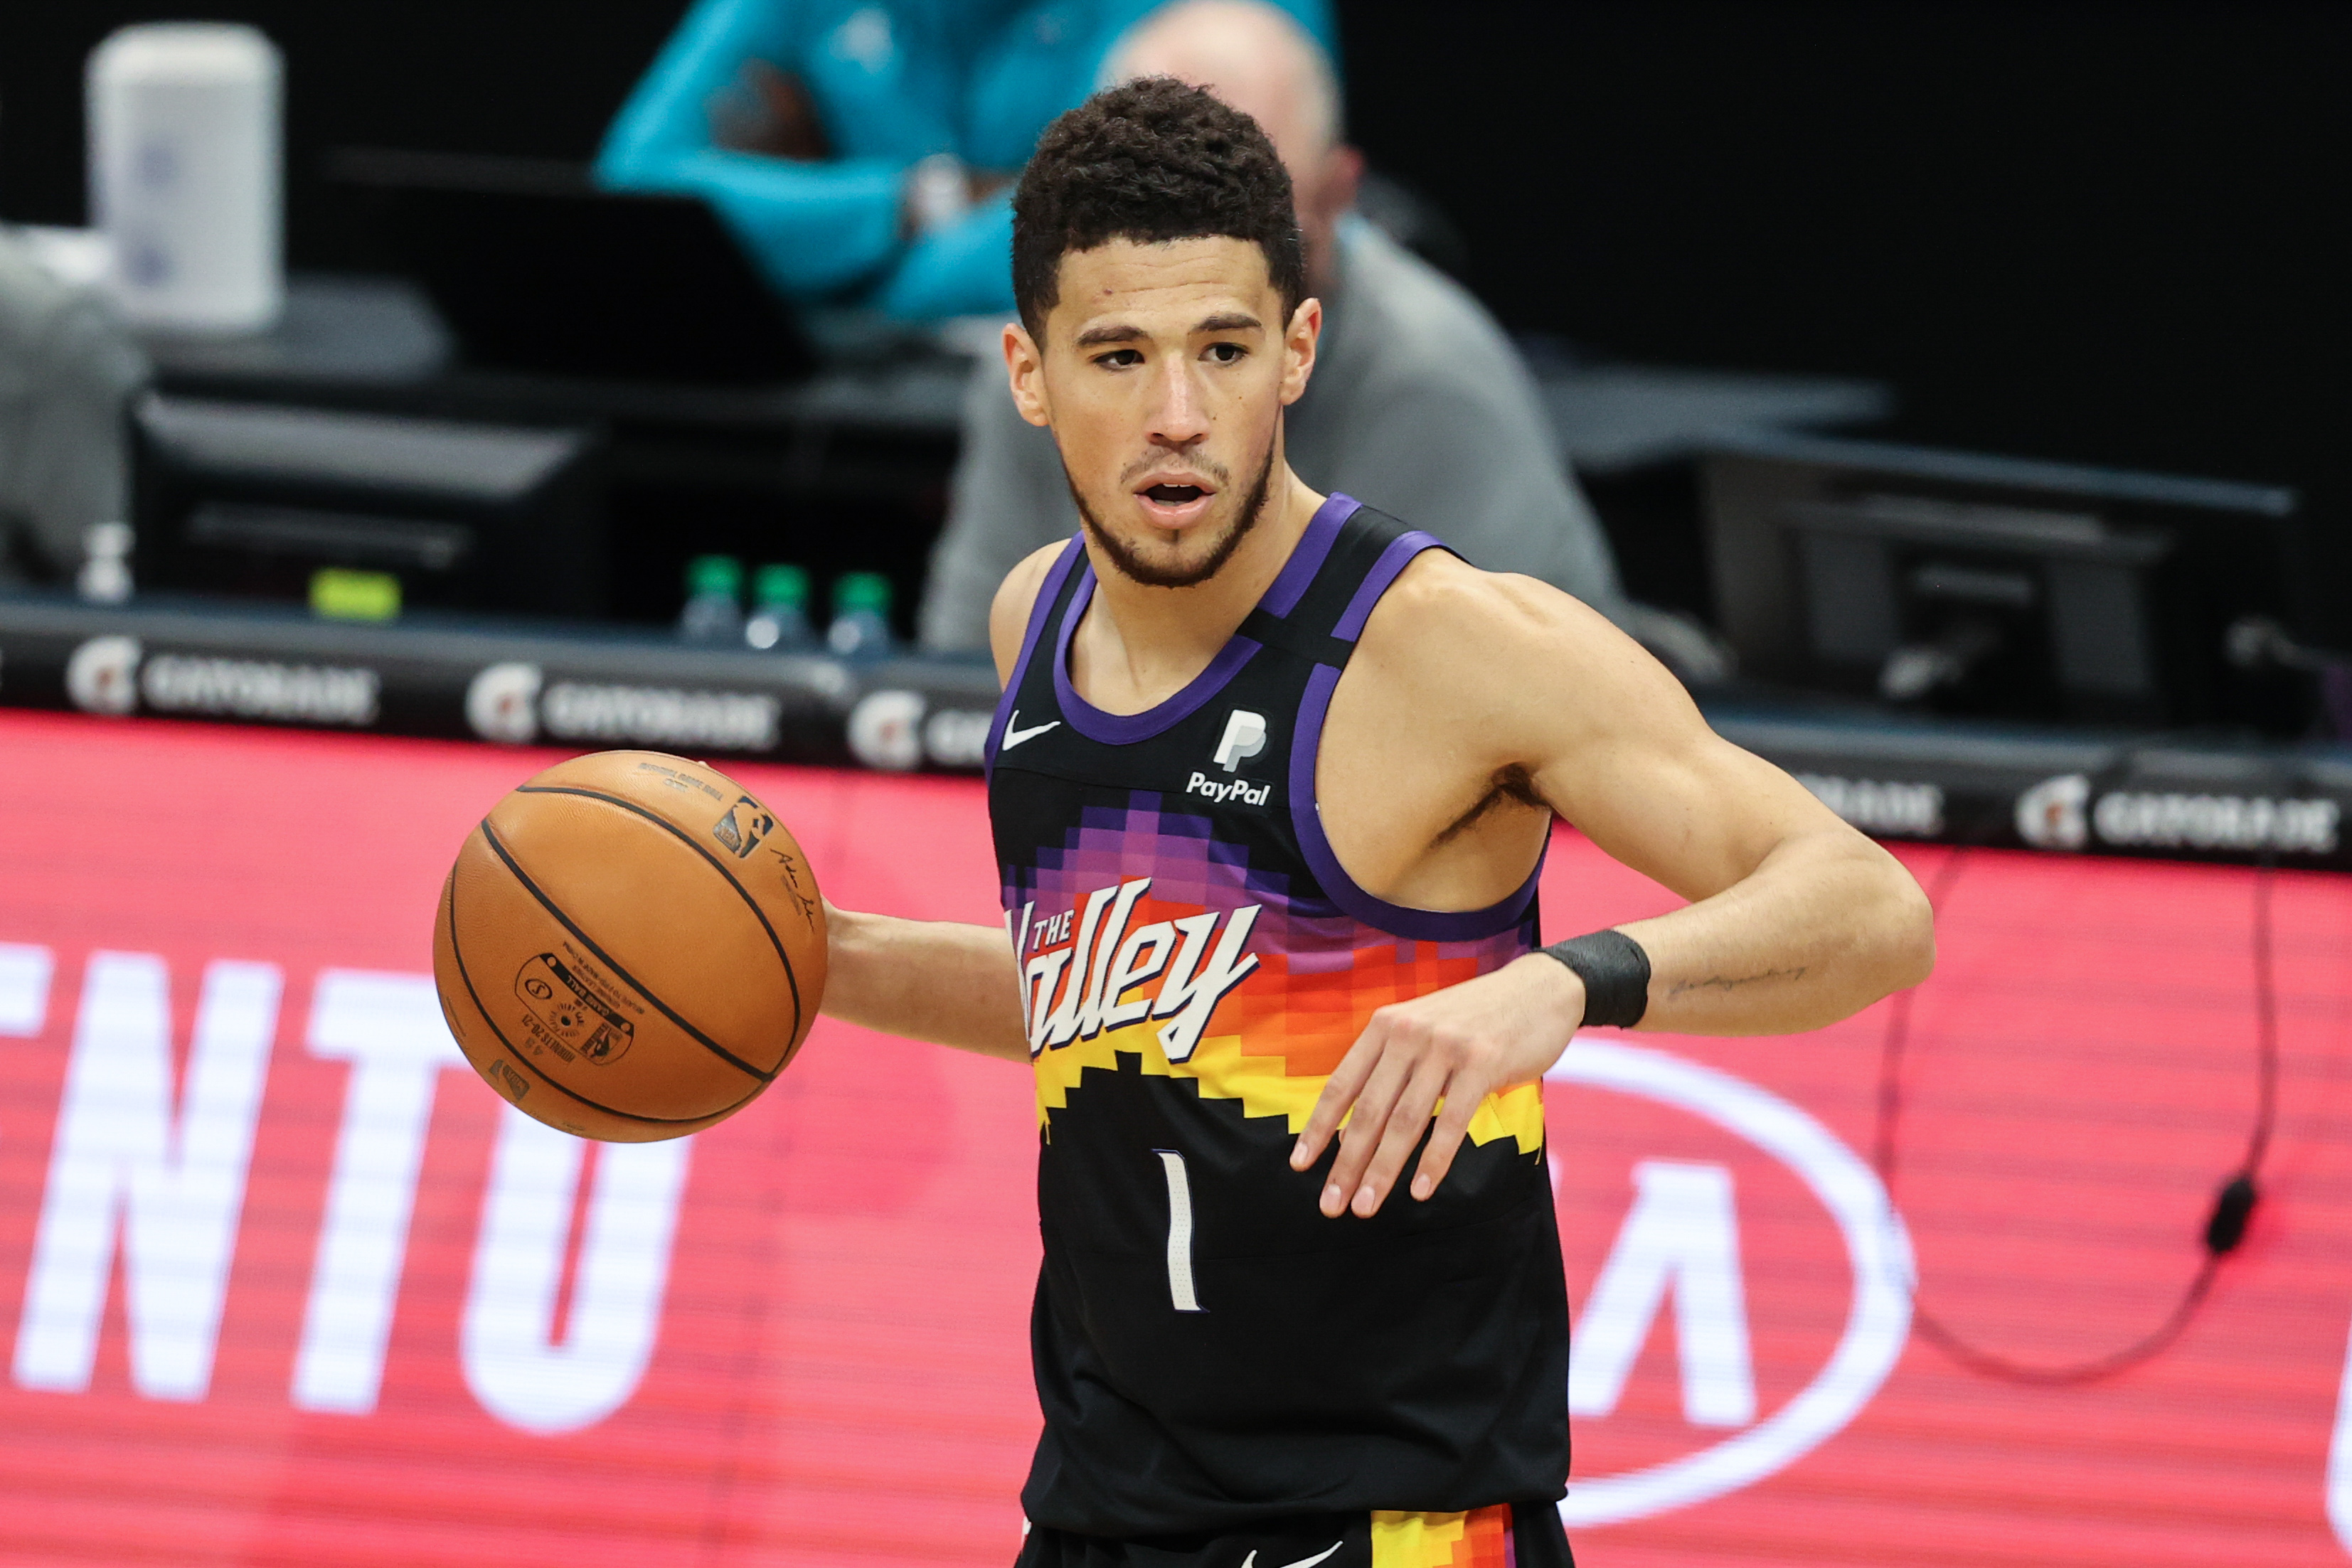 NBA roundup: Devin Booker scores 45 as Suns stay hot | Reuters